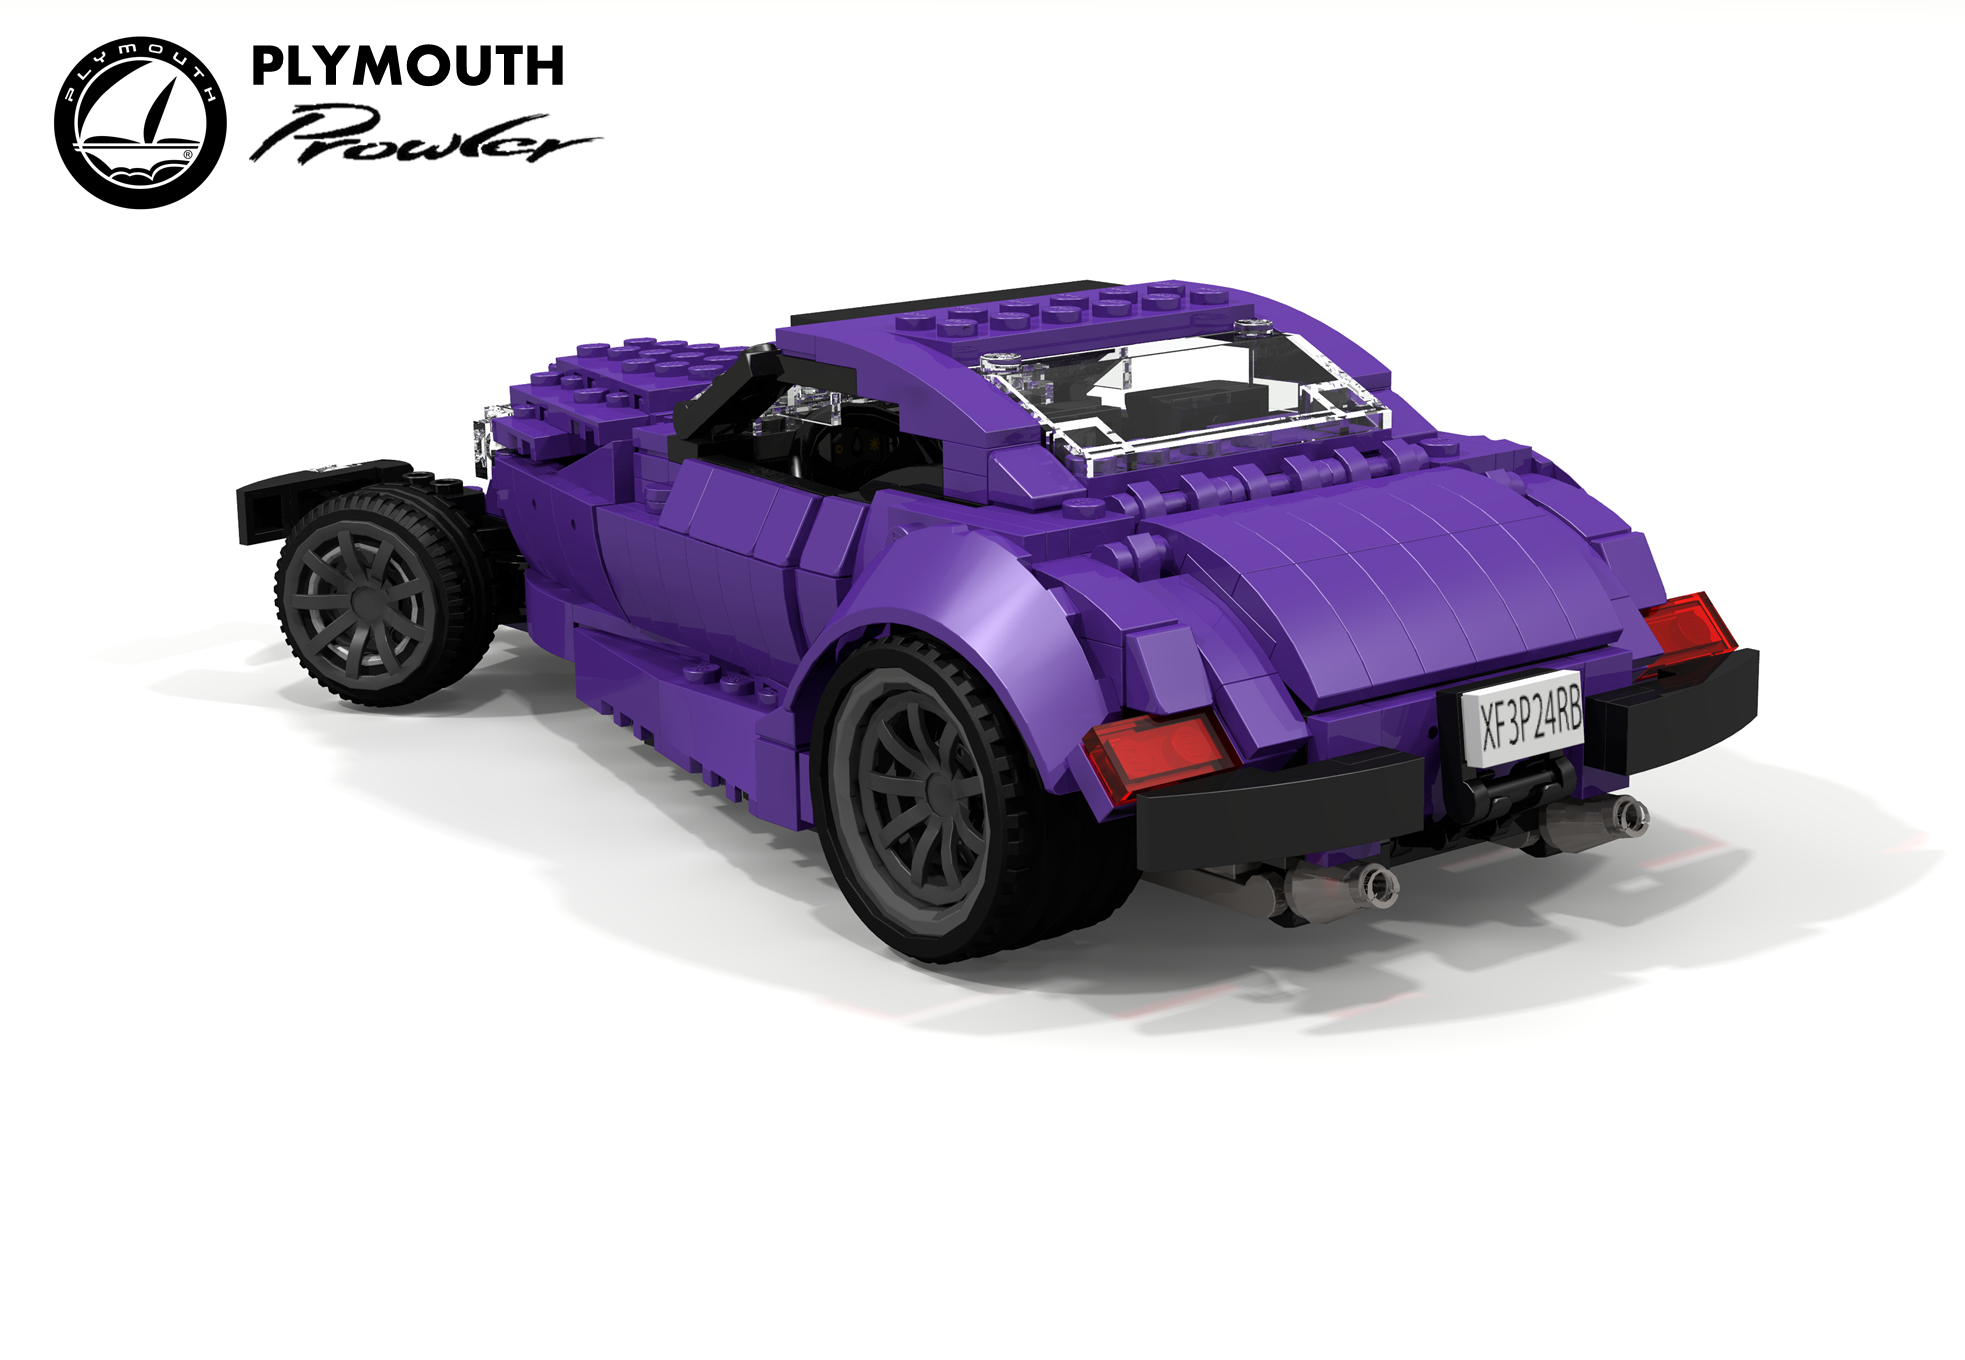 plymouth_prowler_02.png